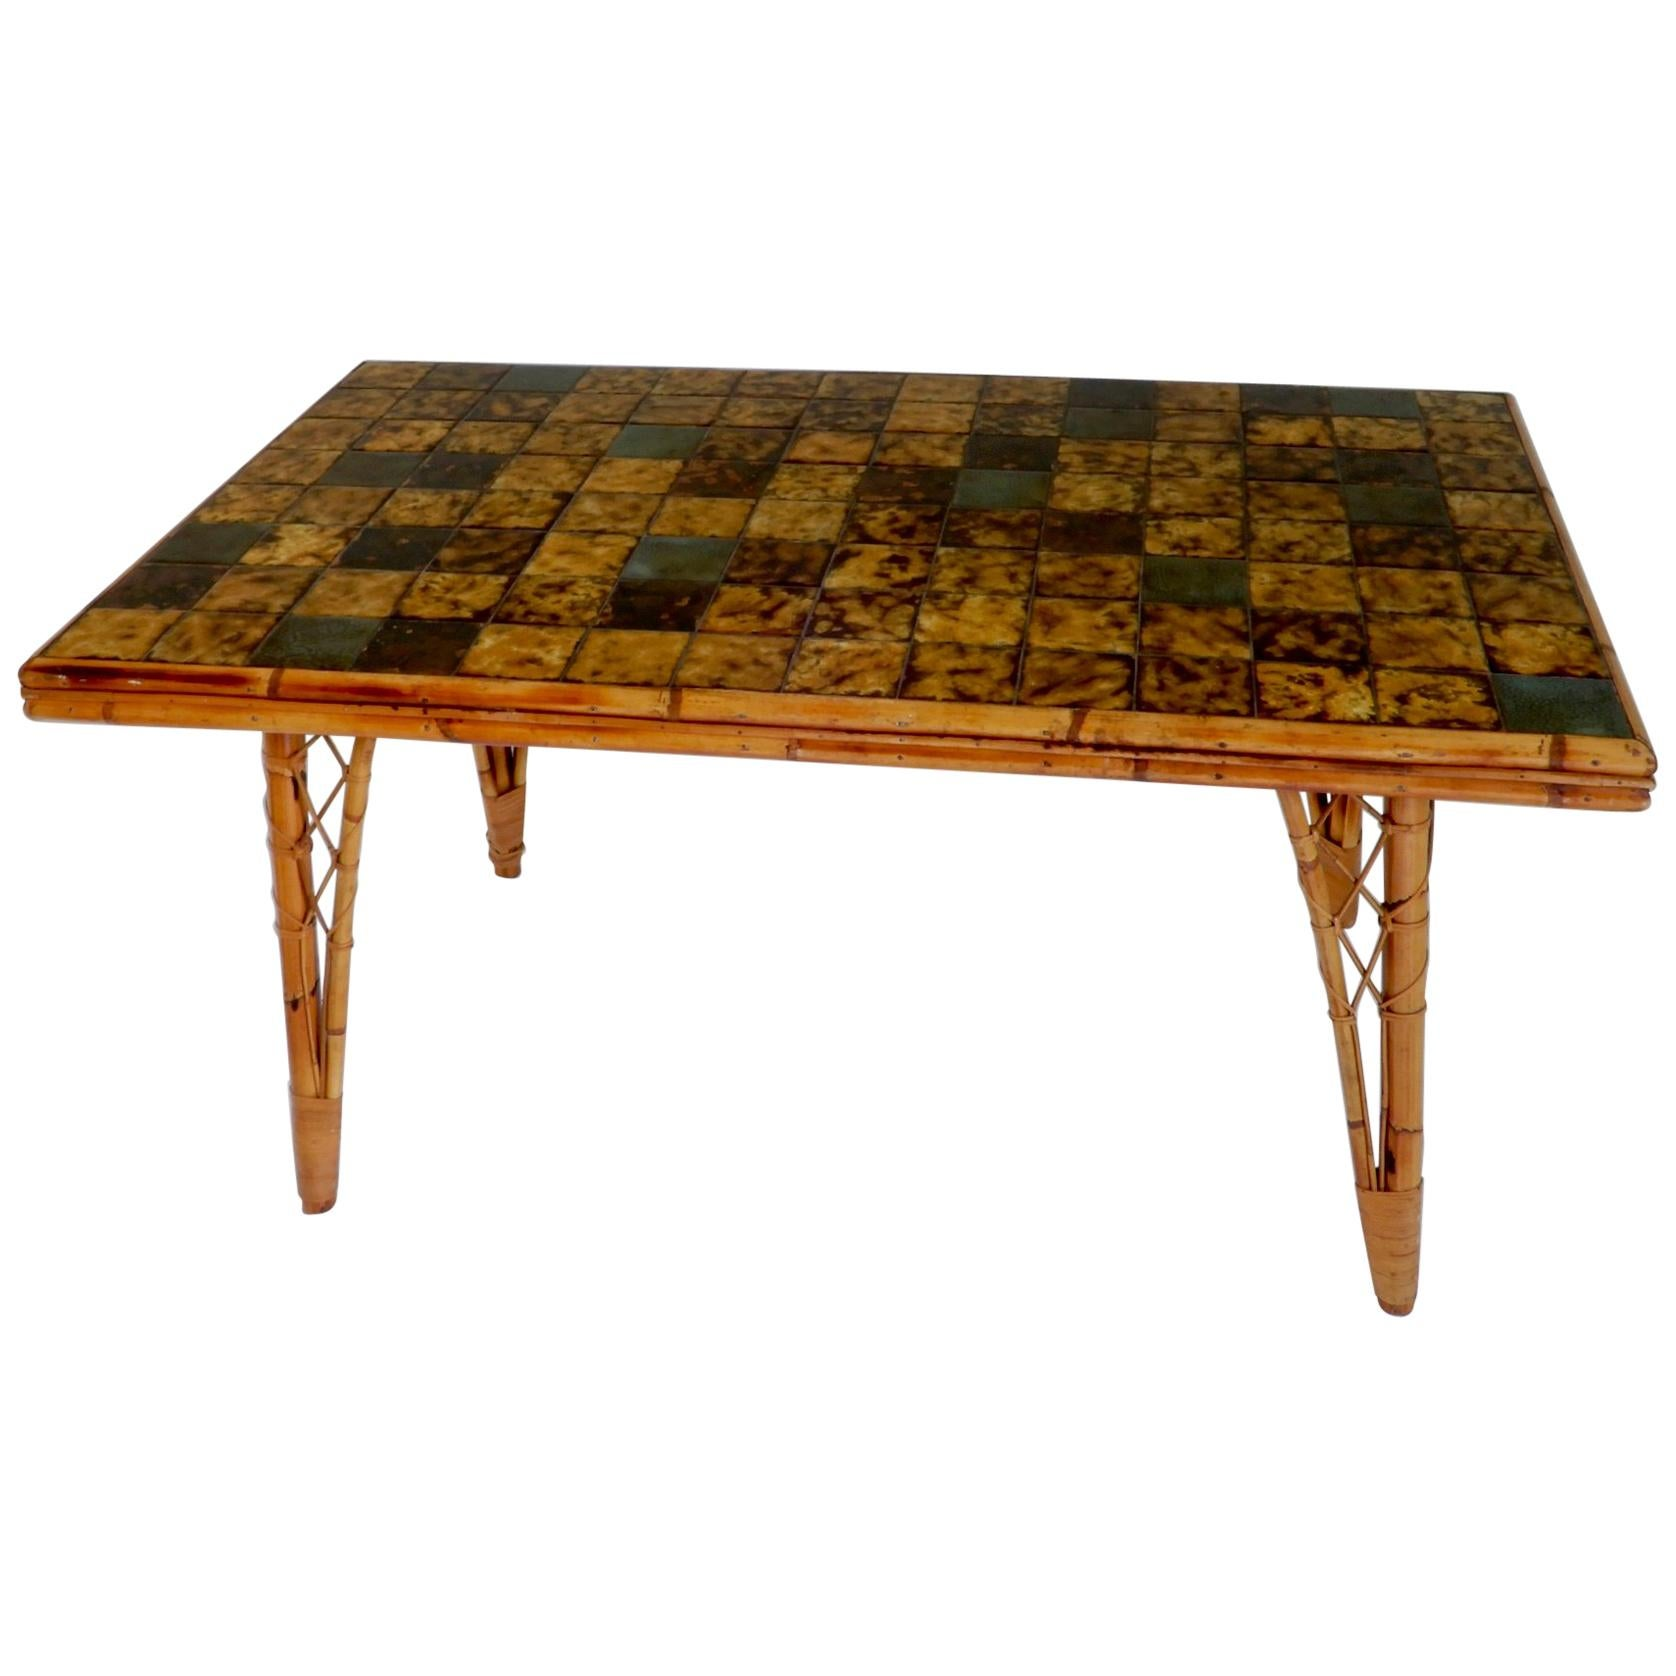 french bamboo dining table with ceramic tile top 1950s